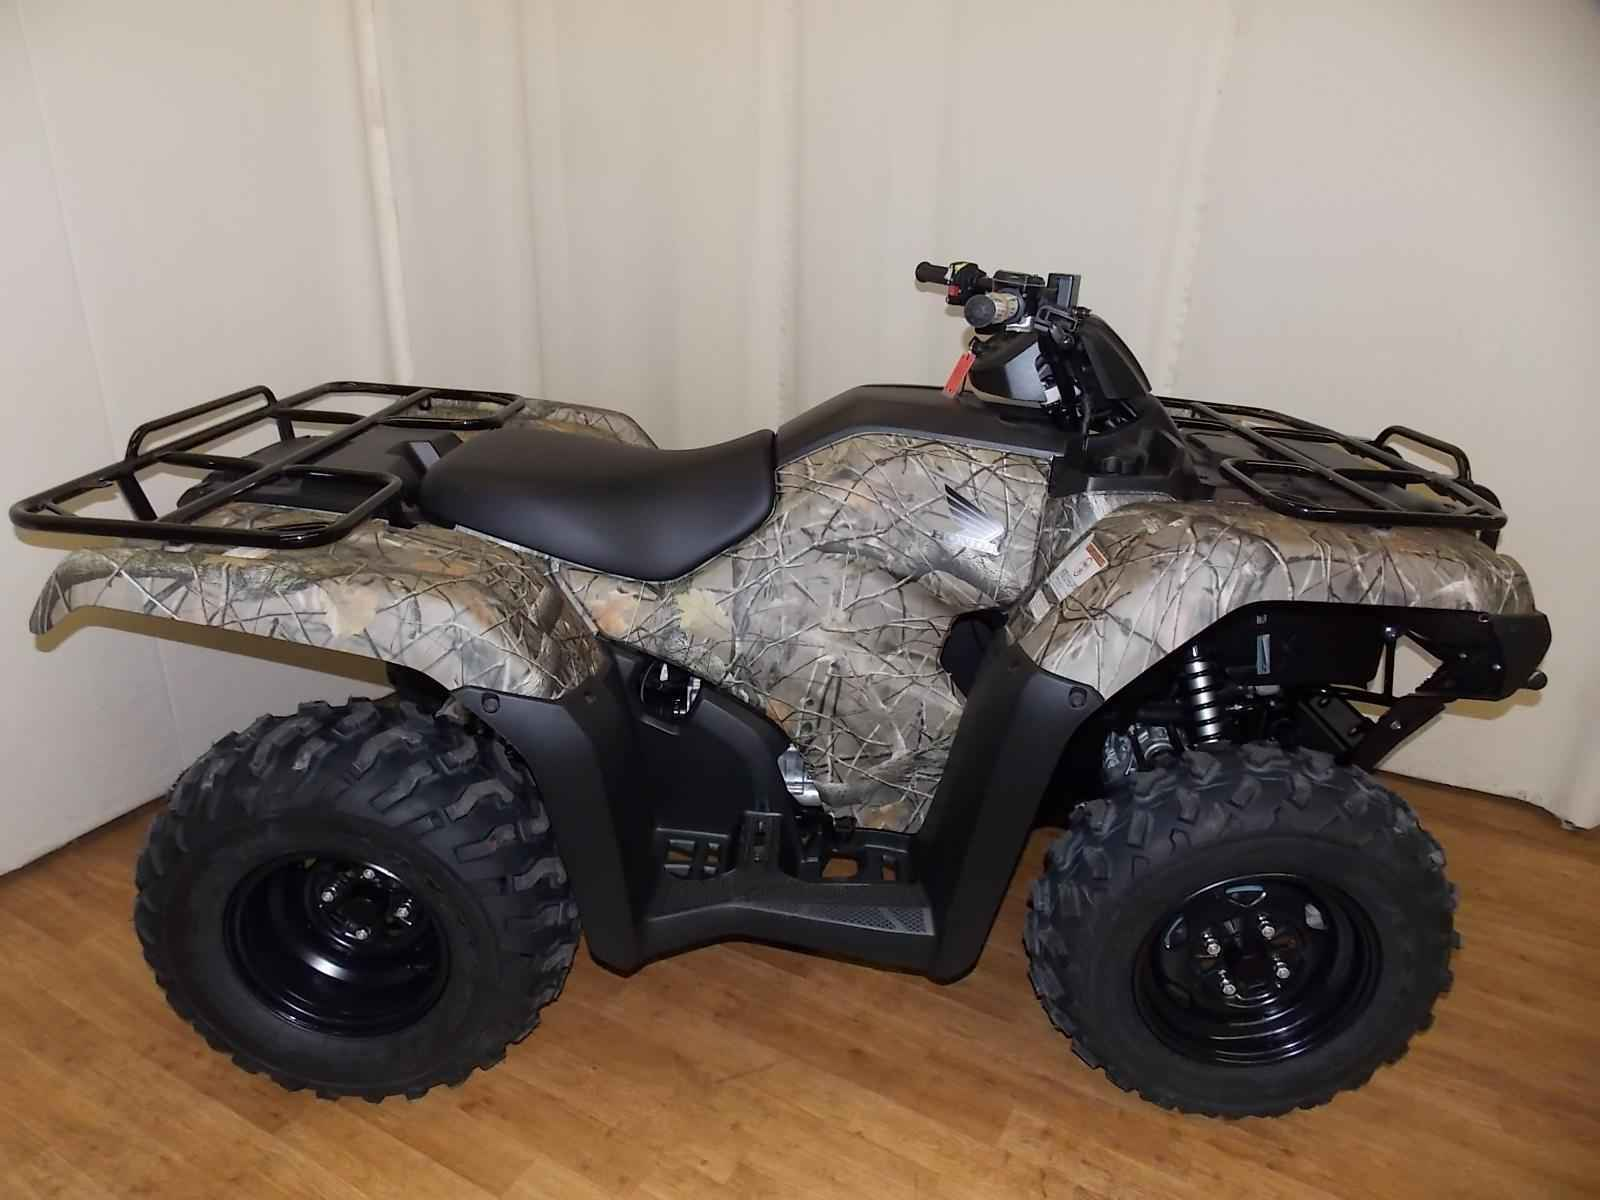 New 2017 honda fourtrax rancher 4x4 trx420fm1h atvs for for Honda 420 rancher for sale